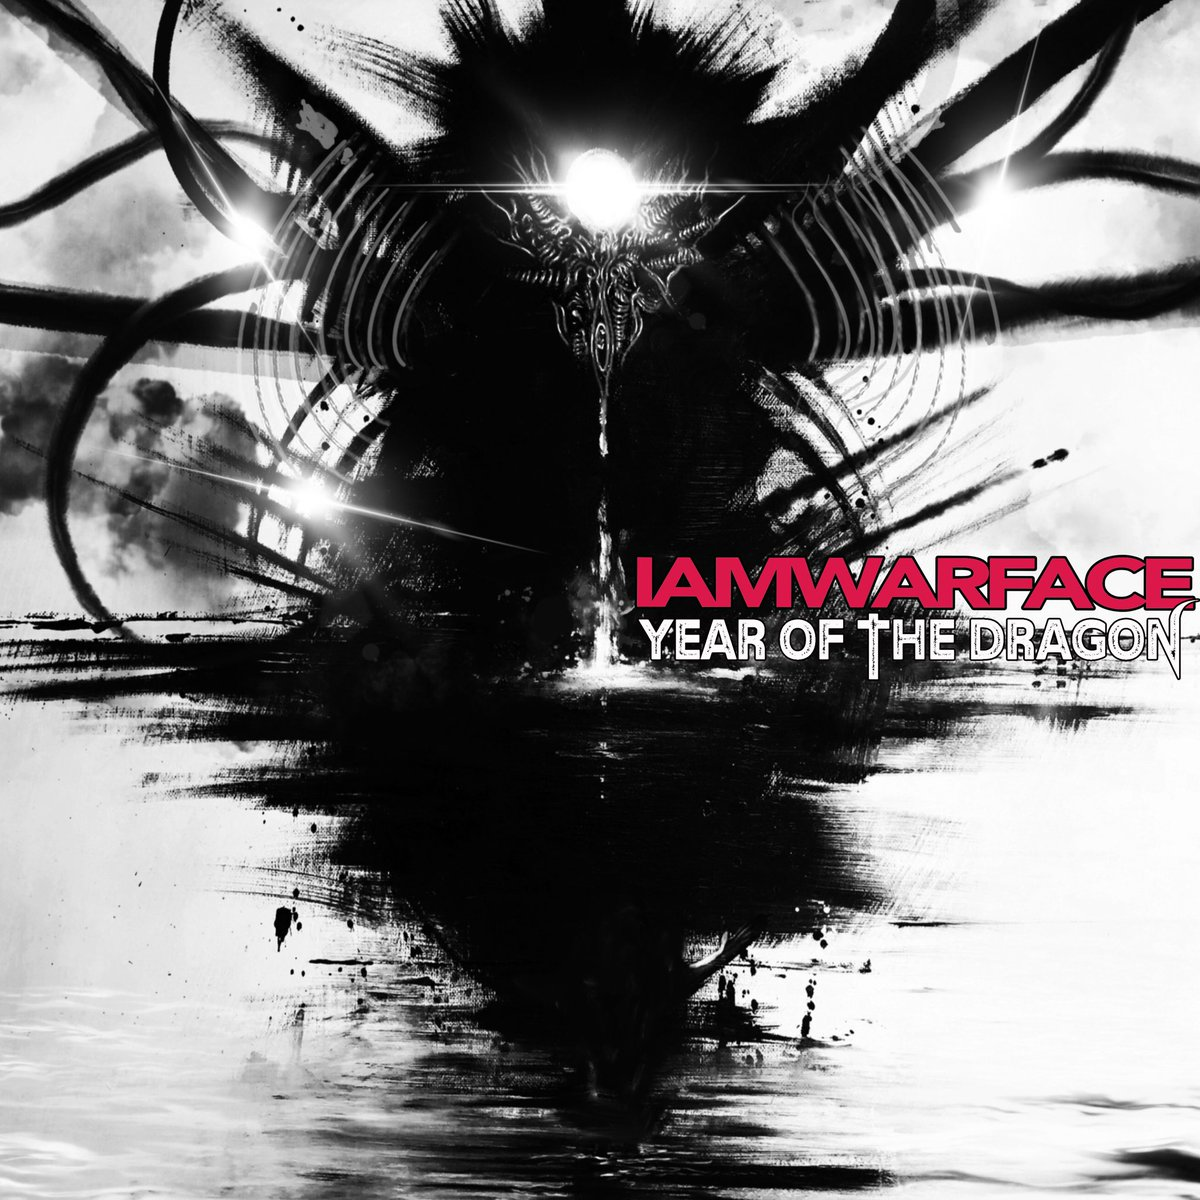 """Our debut album """"YEAR OF THE DRAGON"""" is released on September 6th 2019 exclusively from  http://www. iamwarface.com     #uk #NewMusicFriday #NewMusicAlert #FridayFeeling #newalbum<br>http://pic.twitter.com/qLE0suS9L0"""